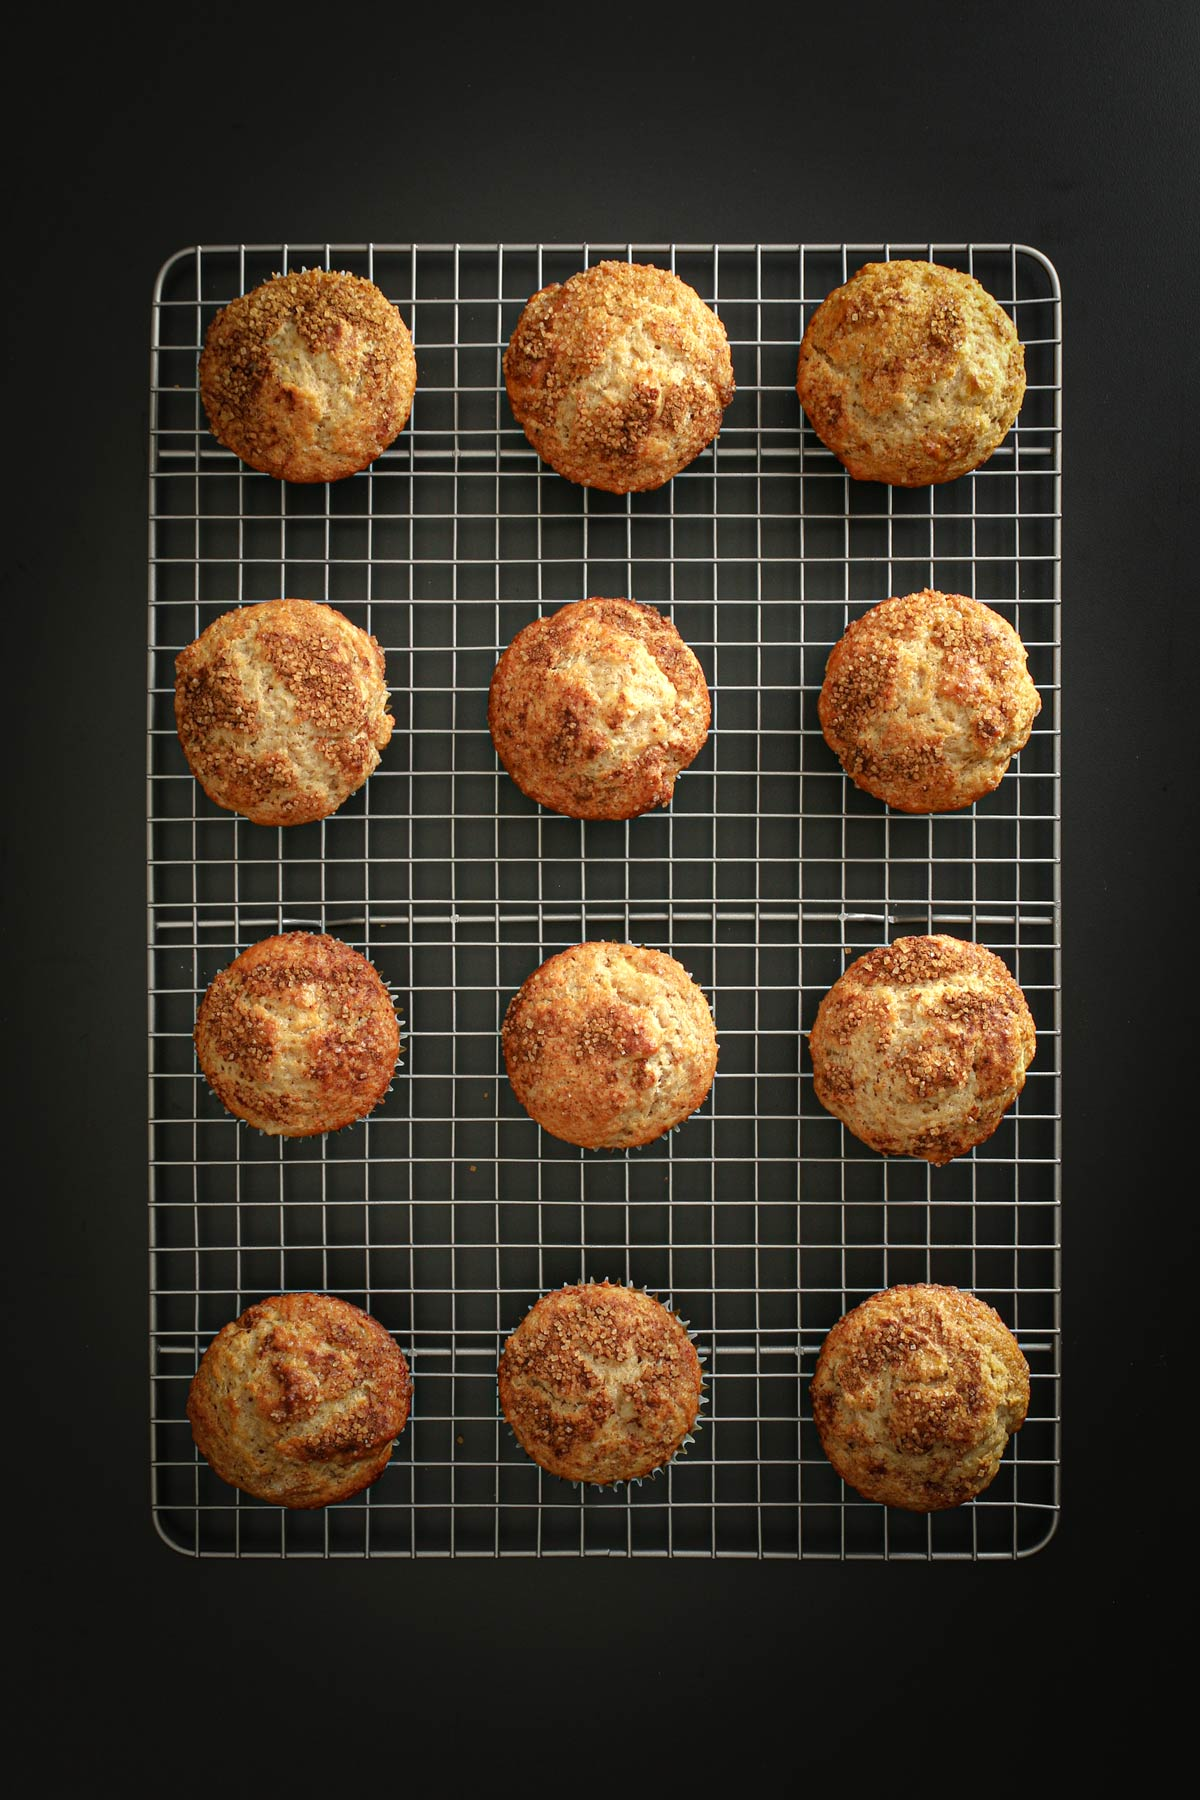 baked muffins cooling on gridded wire rack.